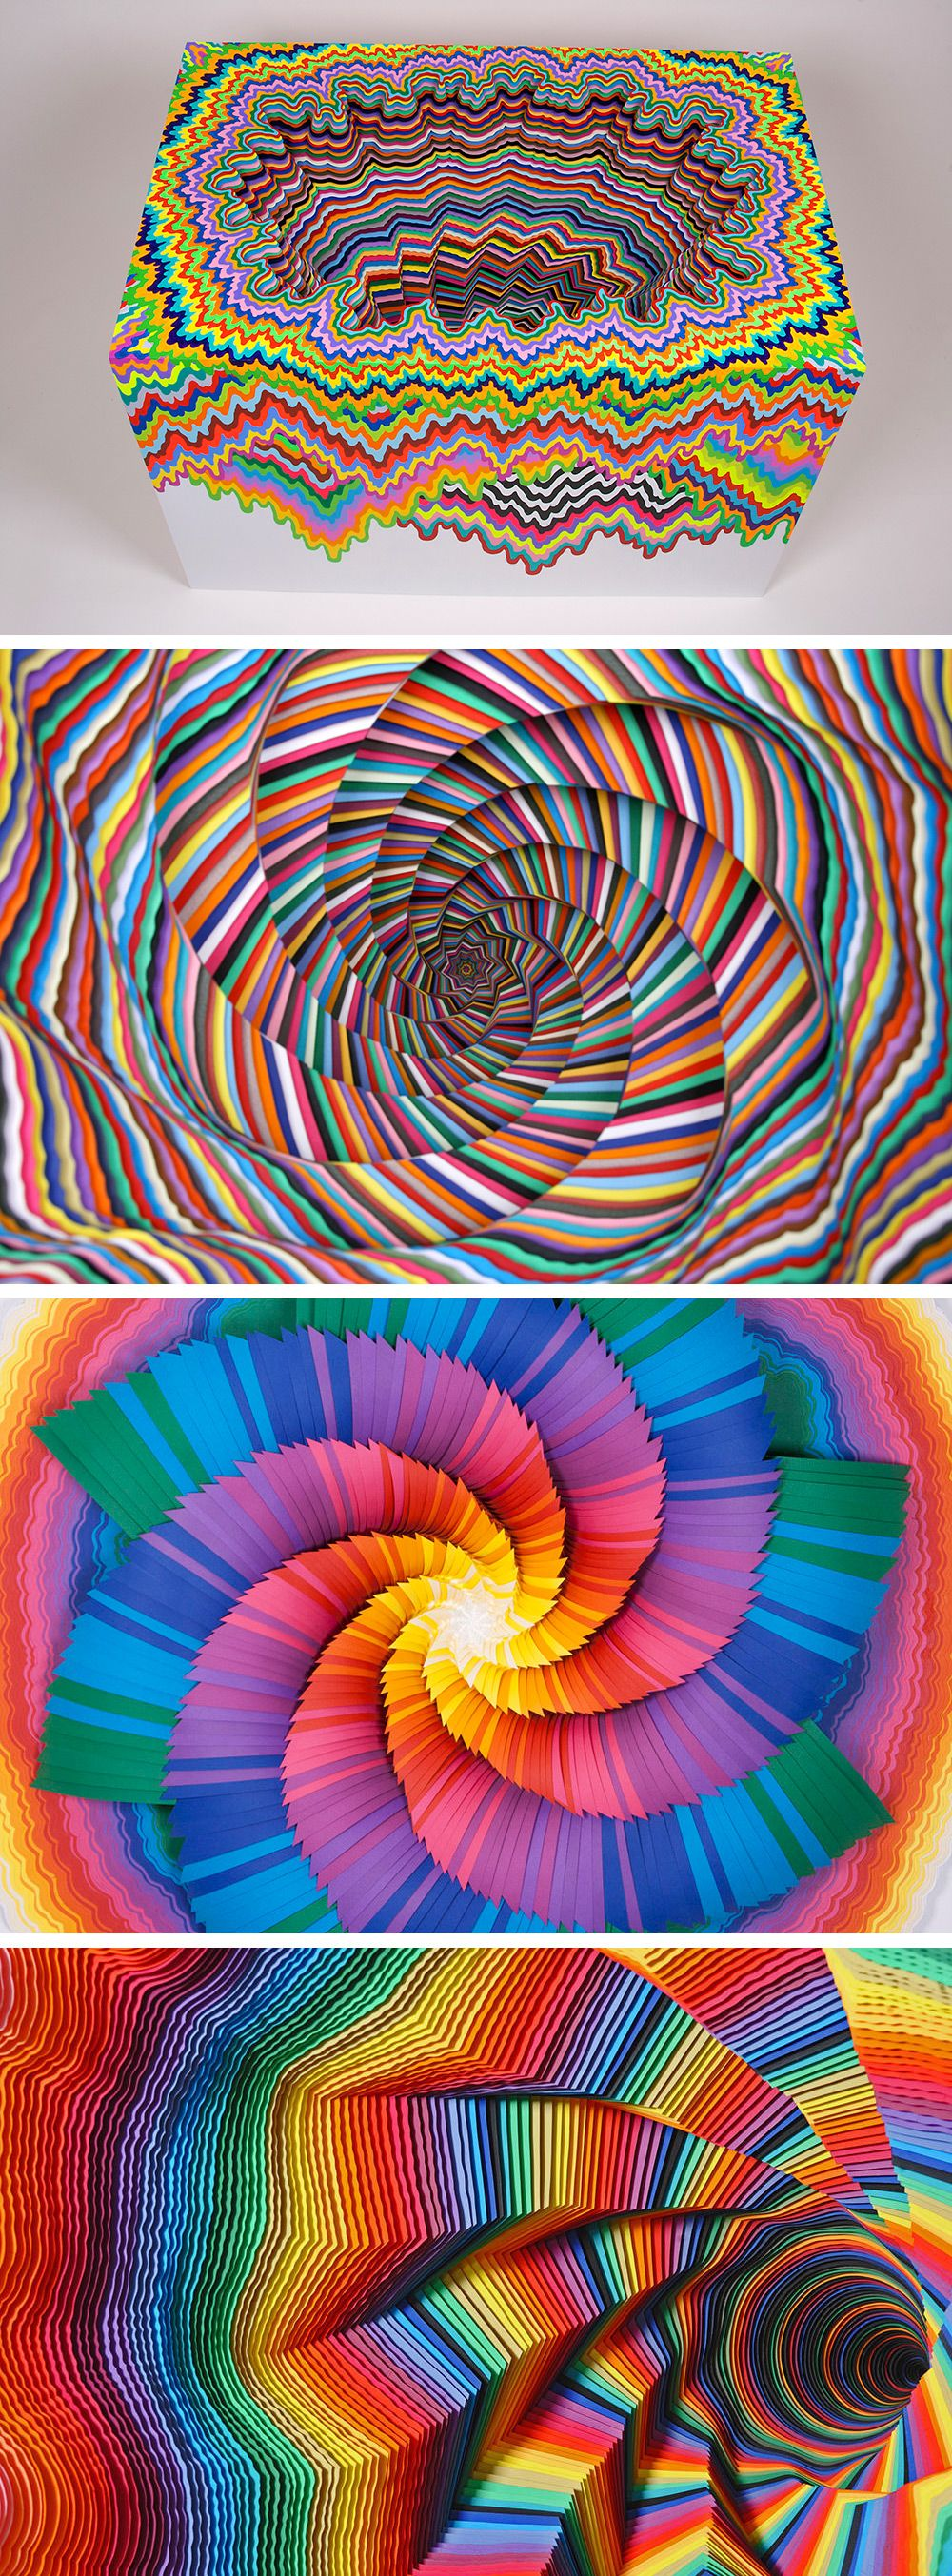 Spiraling rainbow vortexes created from layered paper by for 3d paper craft ideas from jen stark